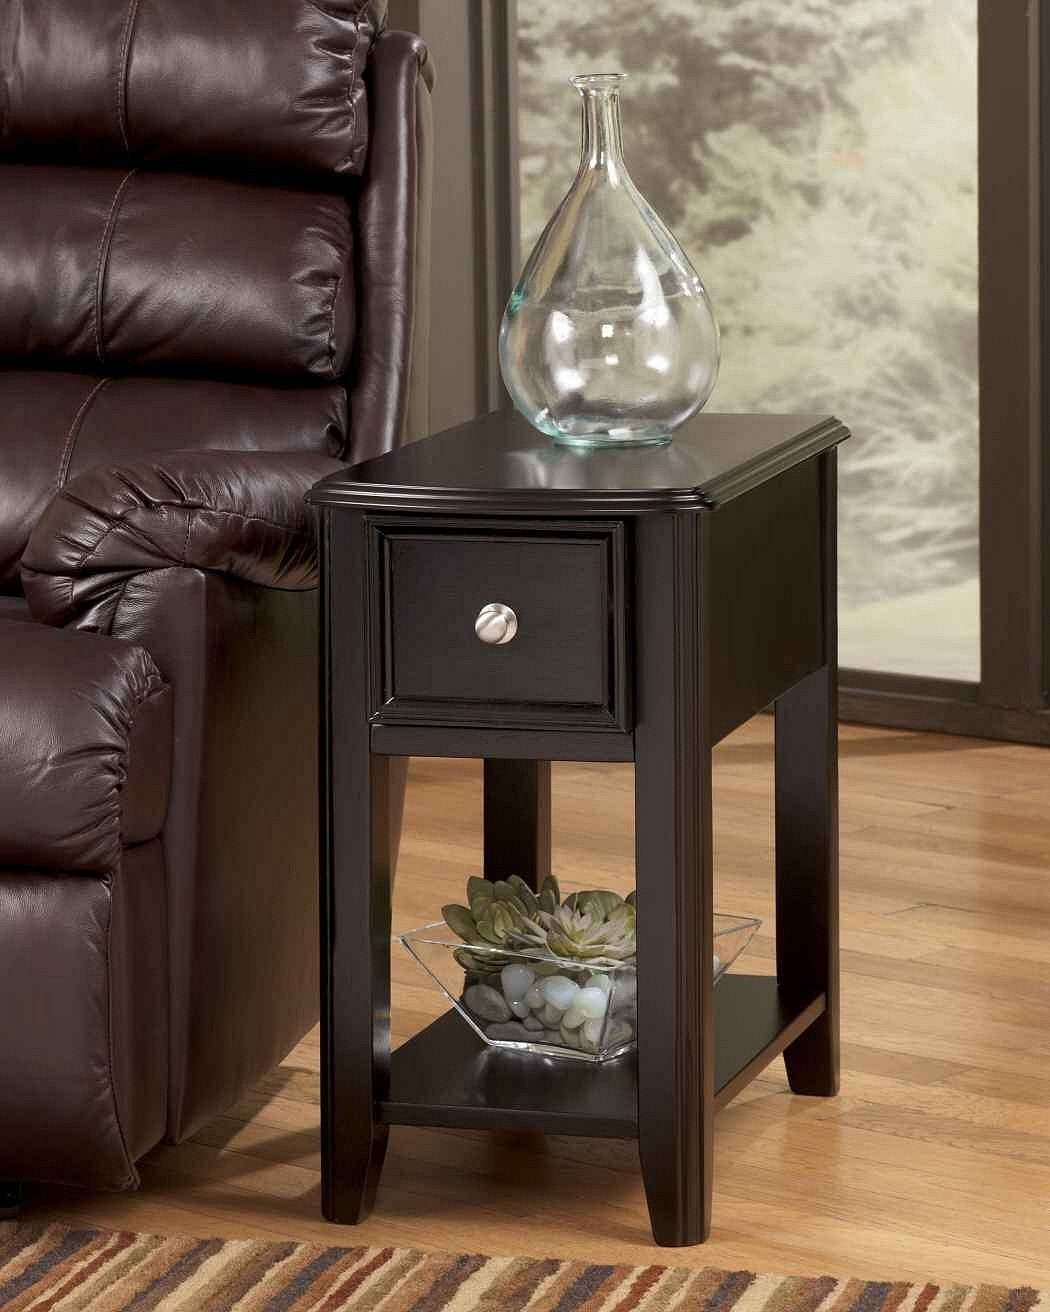 Carlye Chairside Table Dark Living Room Ideas Chair